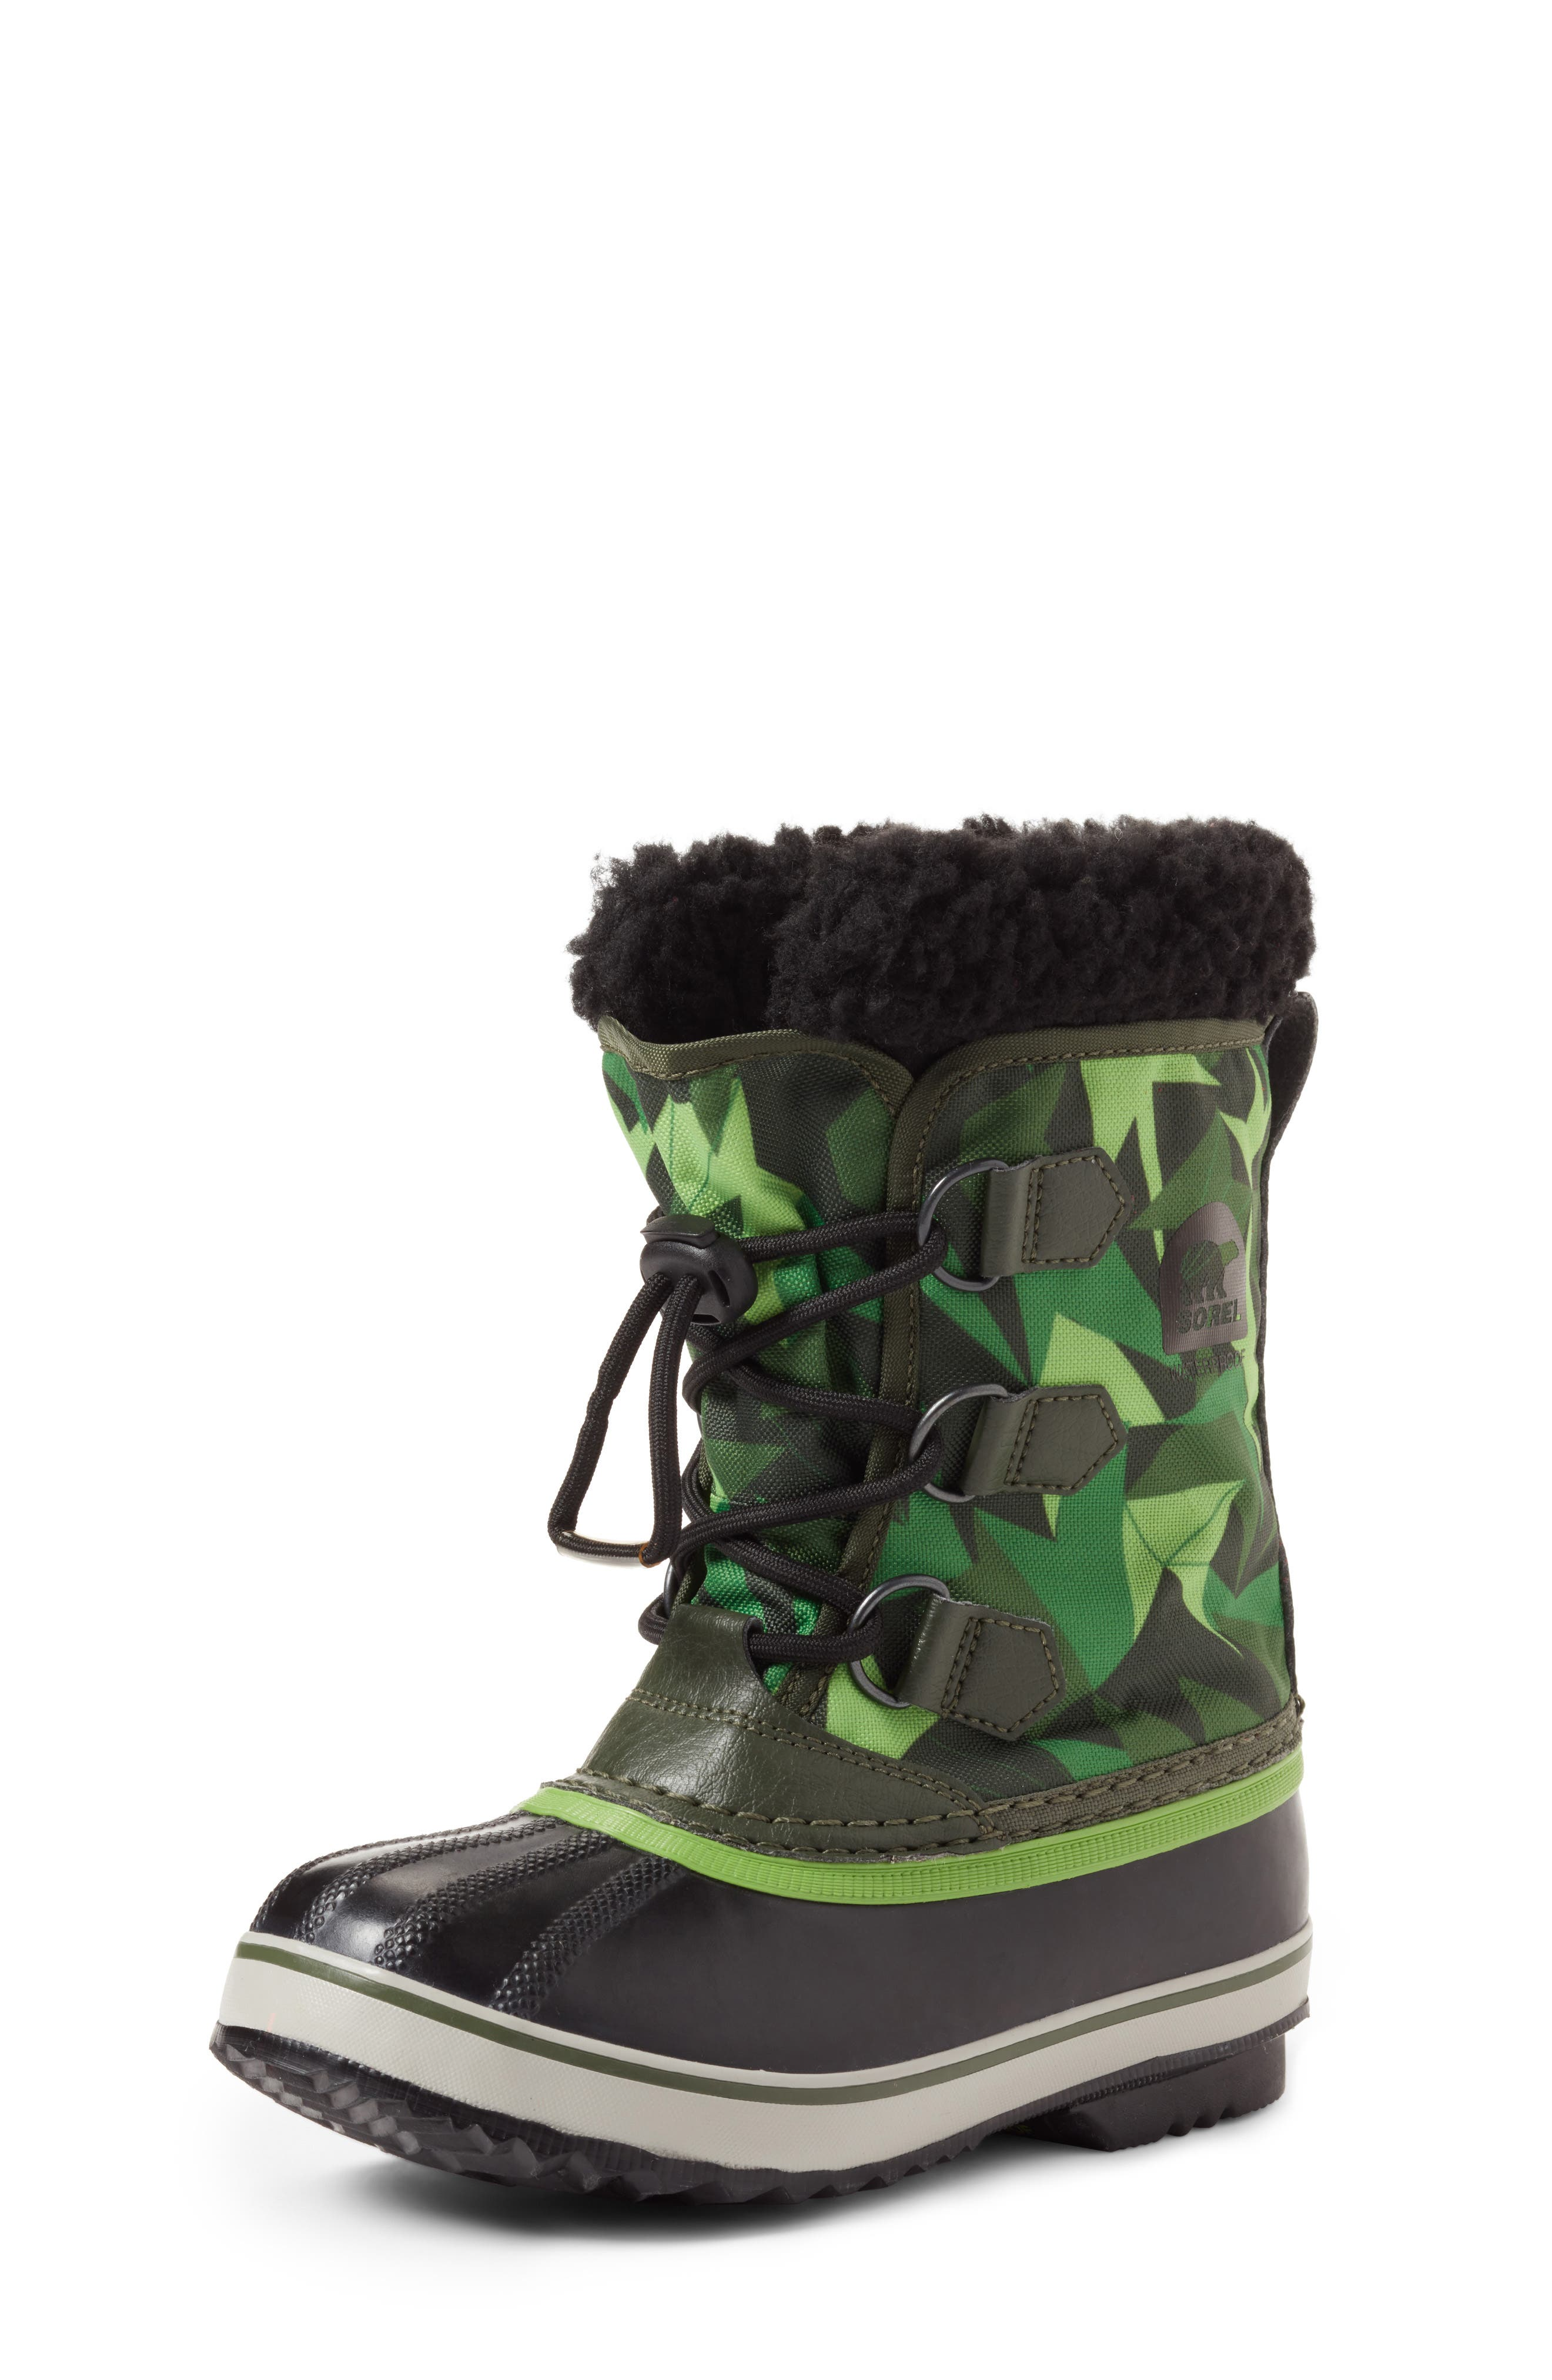 Yoot Pac Waterproof Insulated Snow Boot,                         Main,                         color,